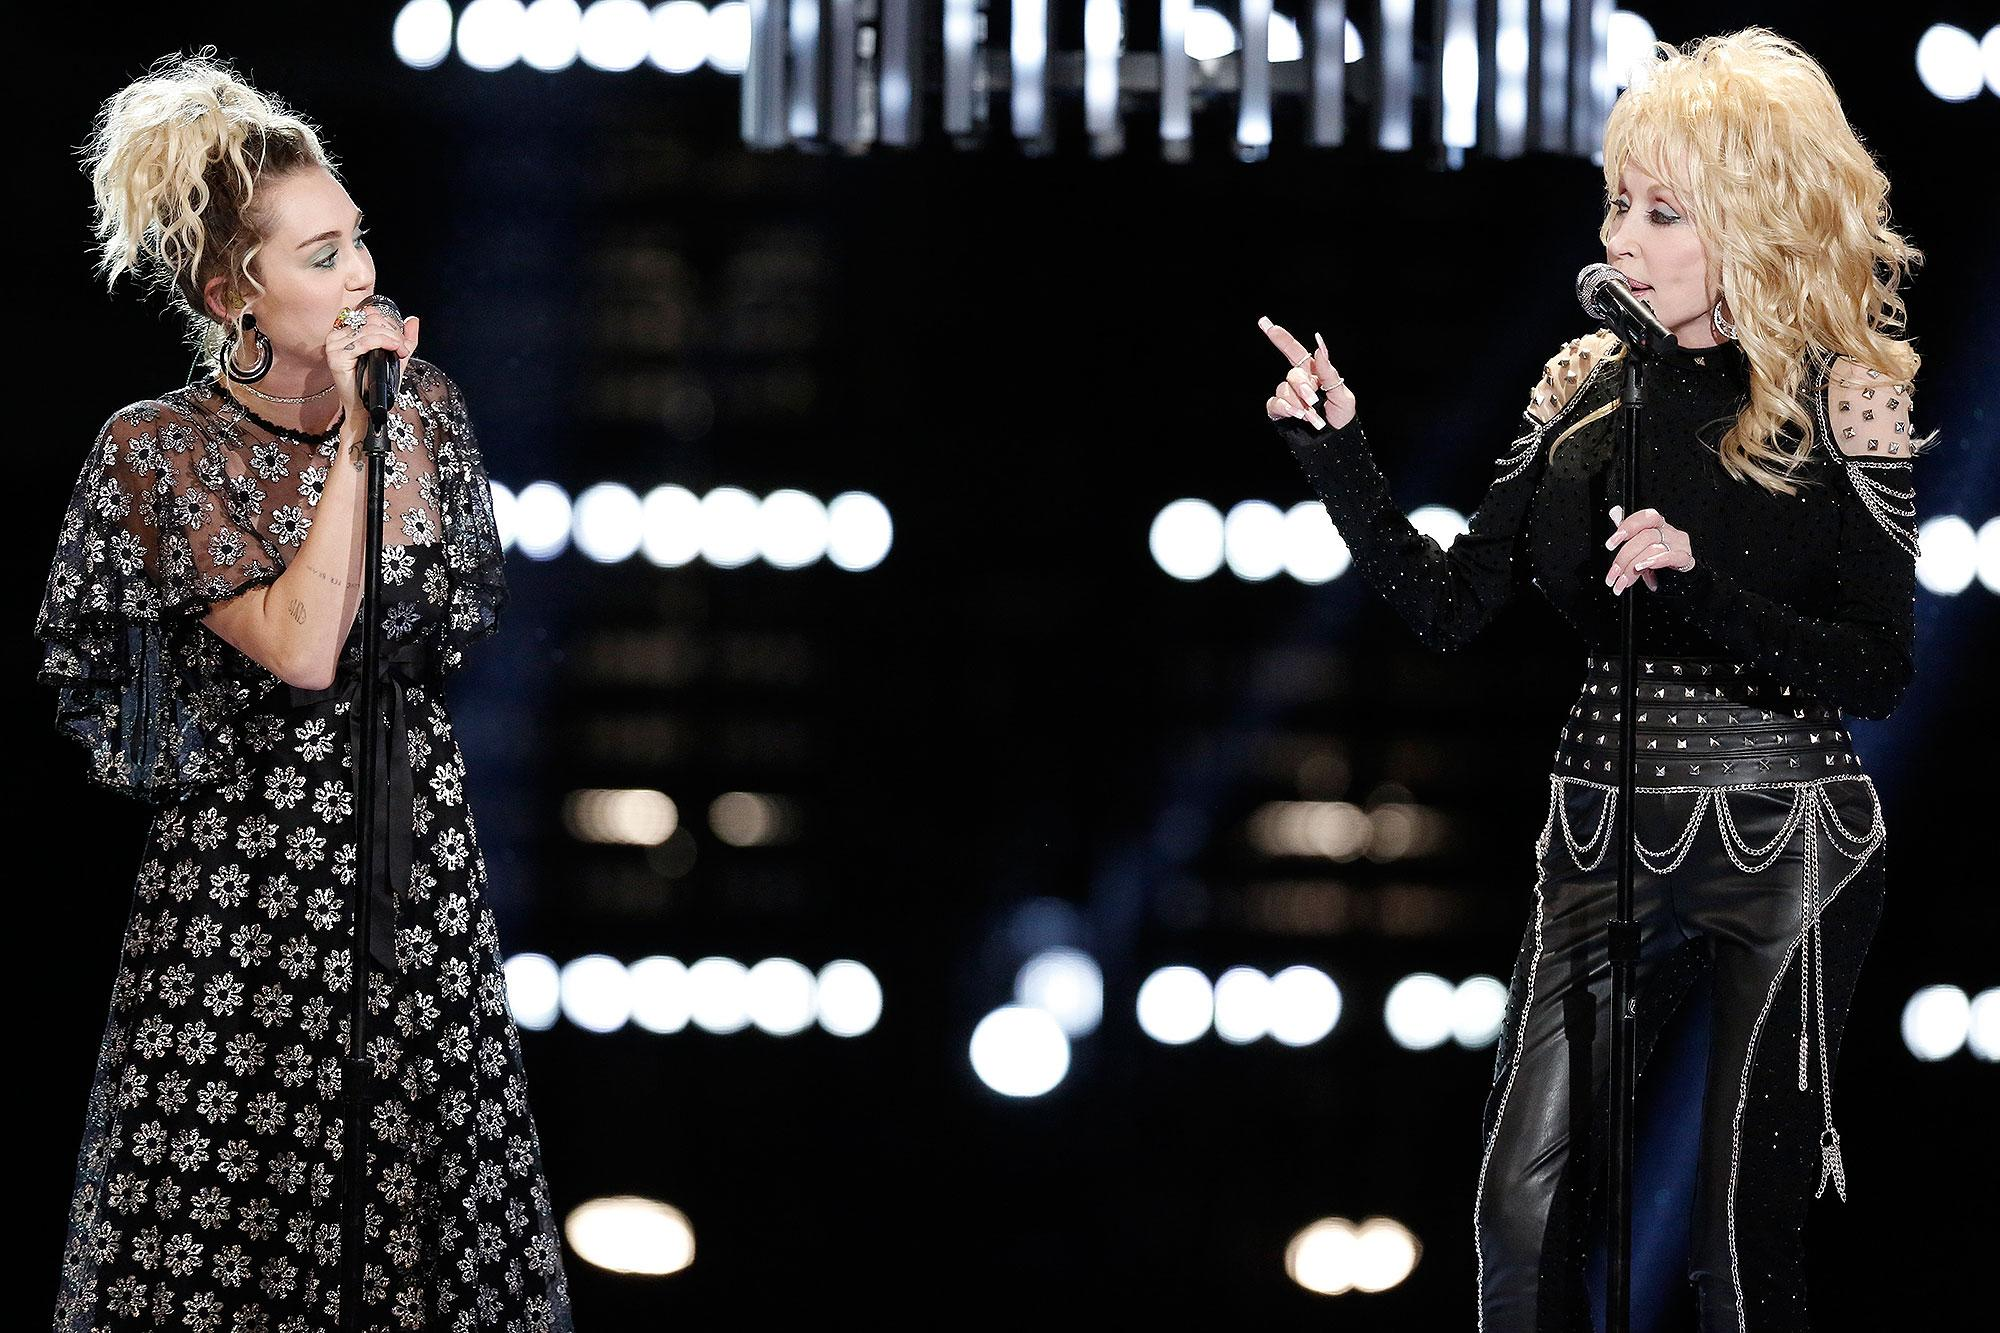 Miley Cyrus And Dolly Parton Unite With Pentatonix For Stunning Jolene Performance On The Voice